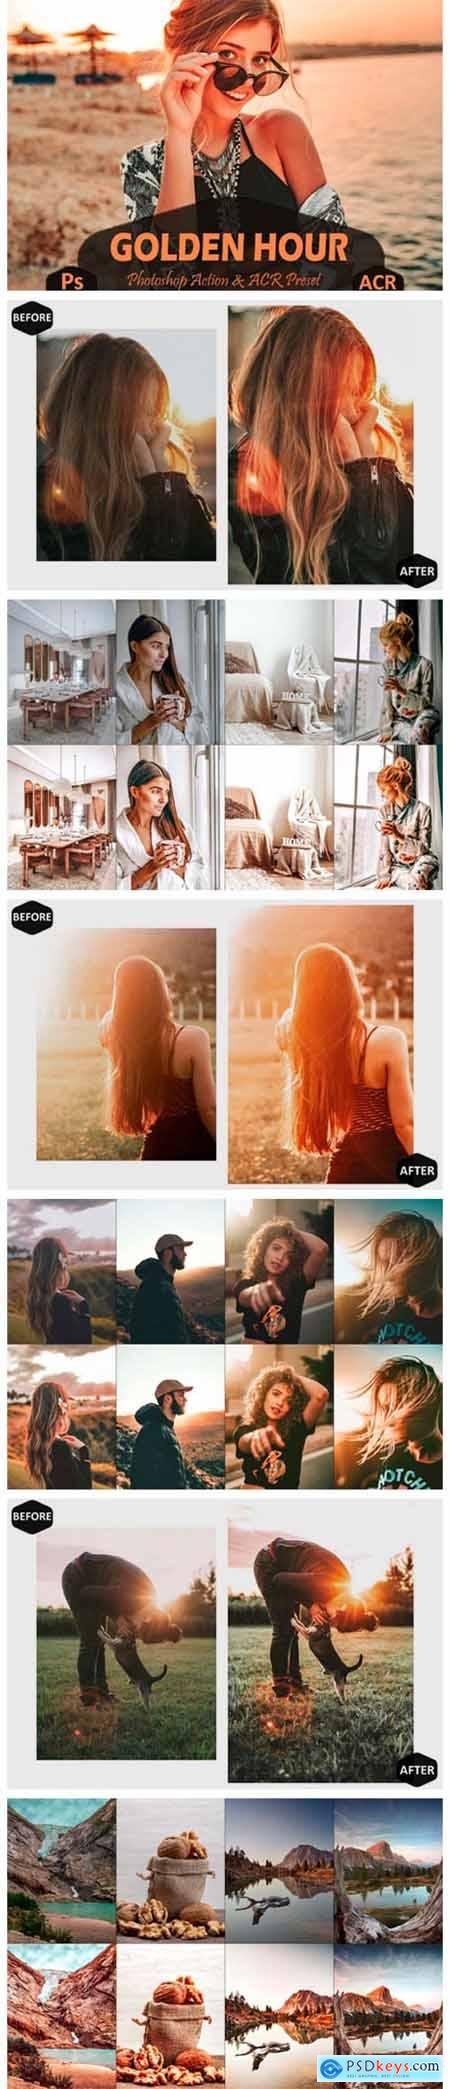 10 Golden Hour Photoshop Actions and ACR 7099653